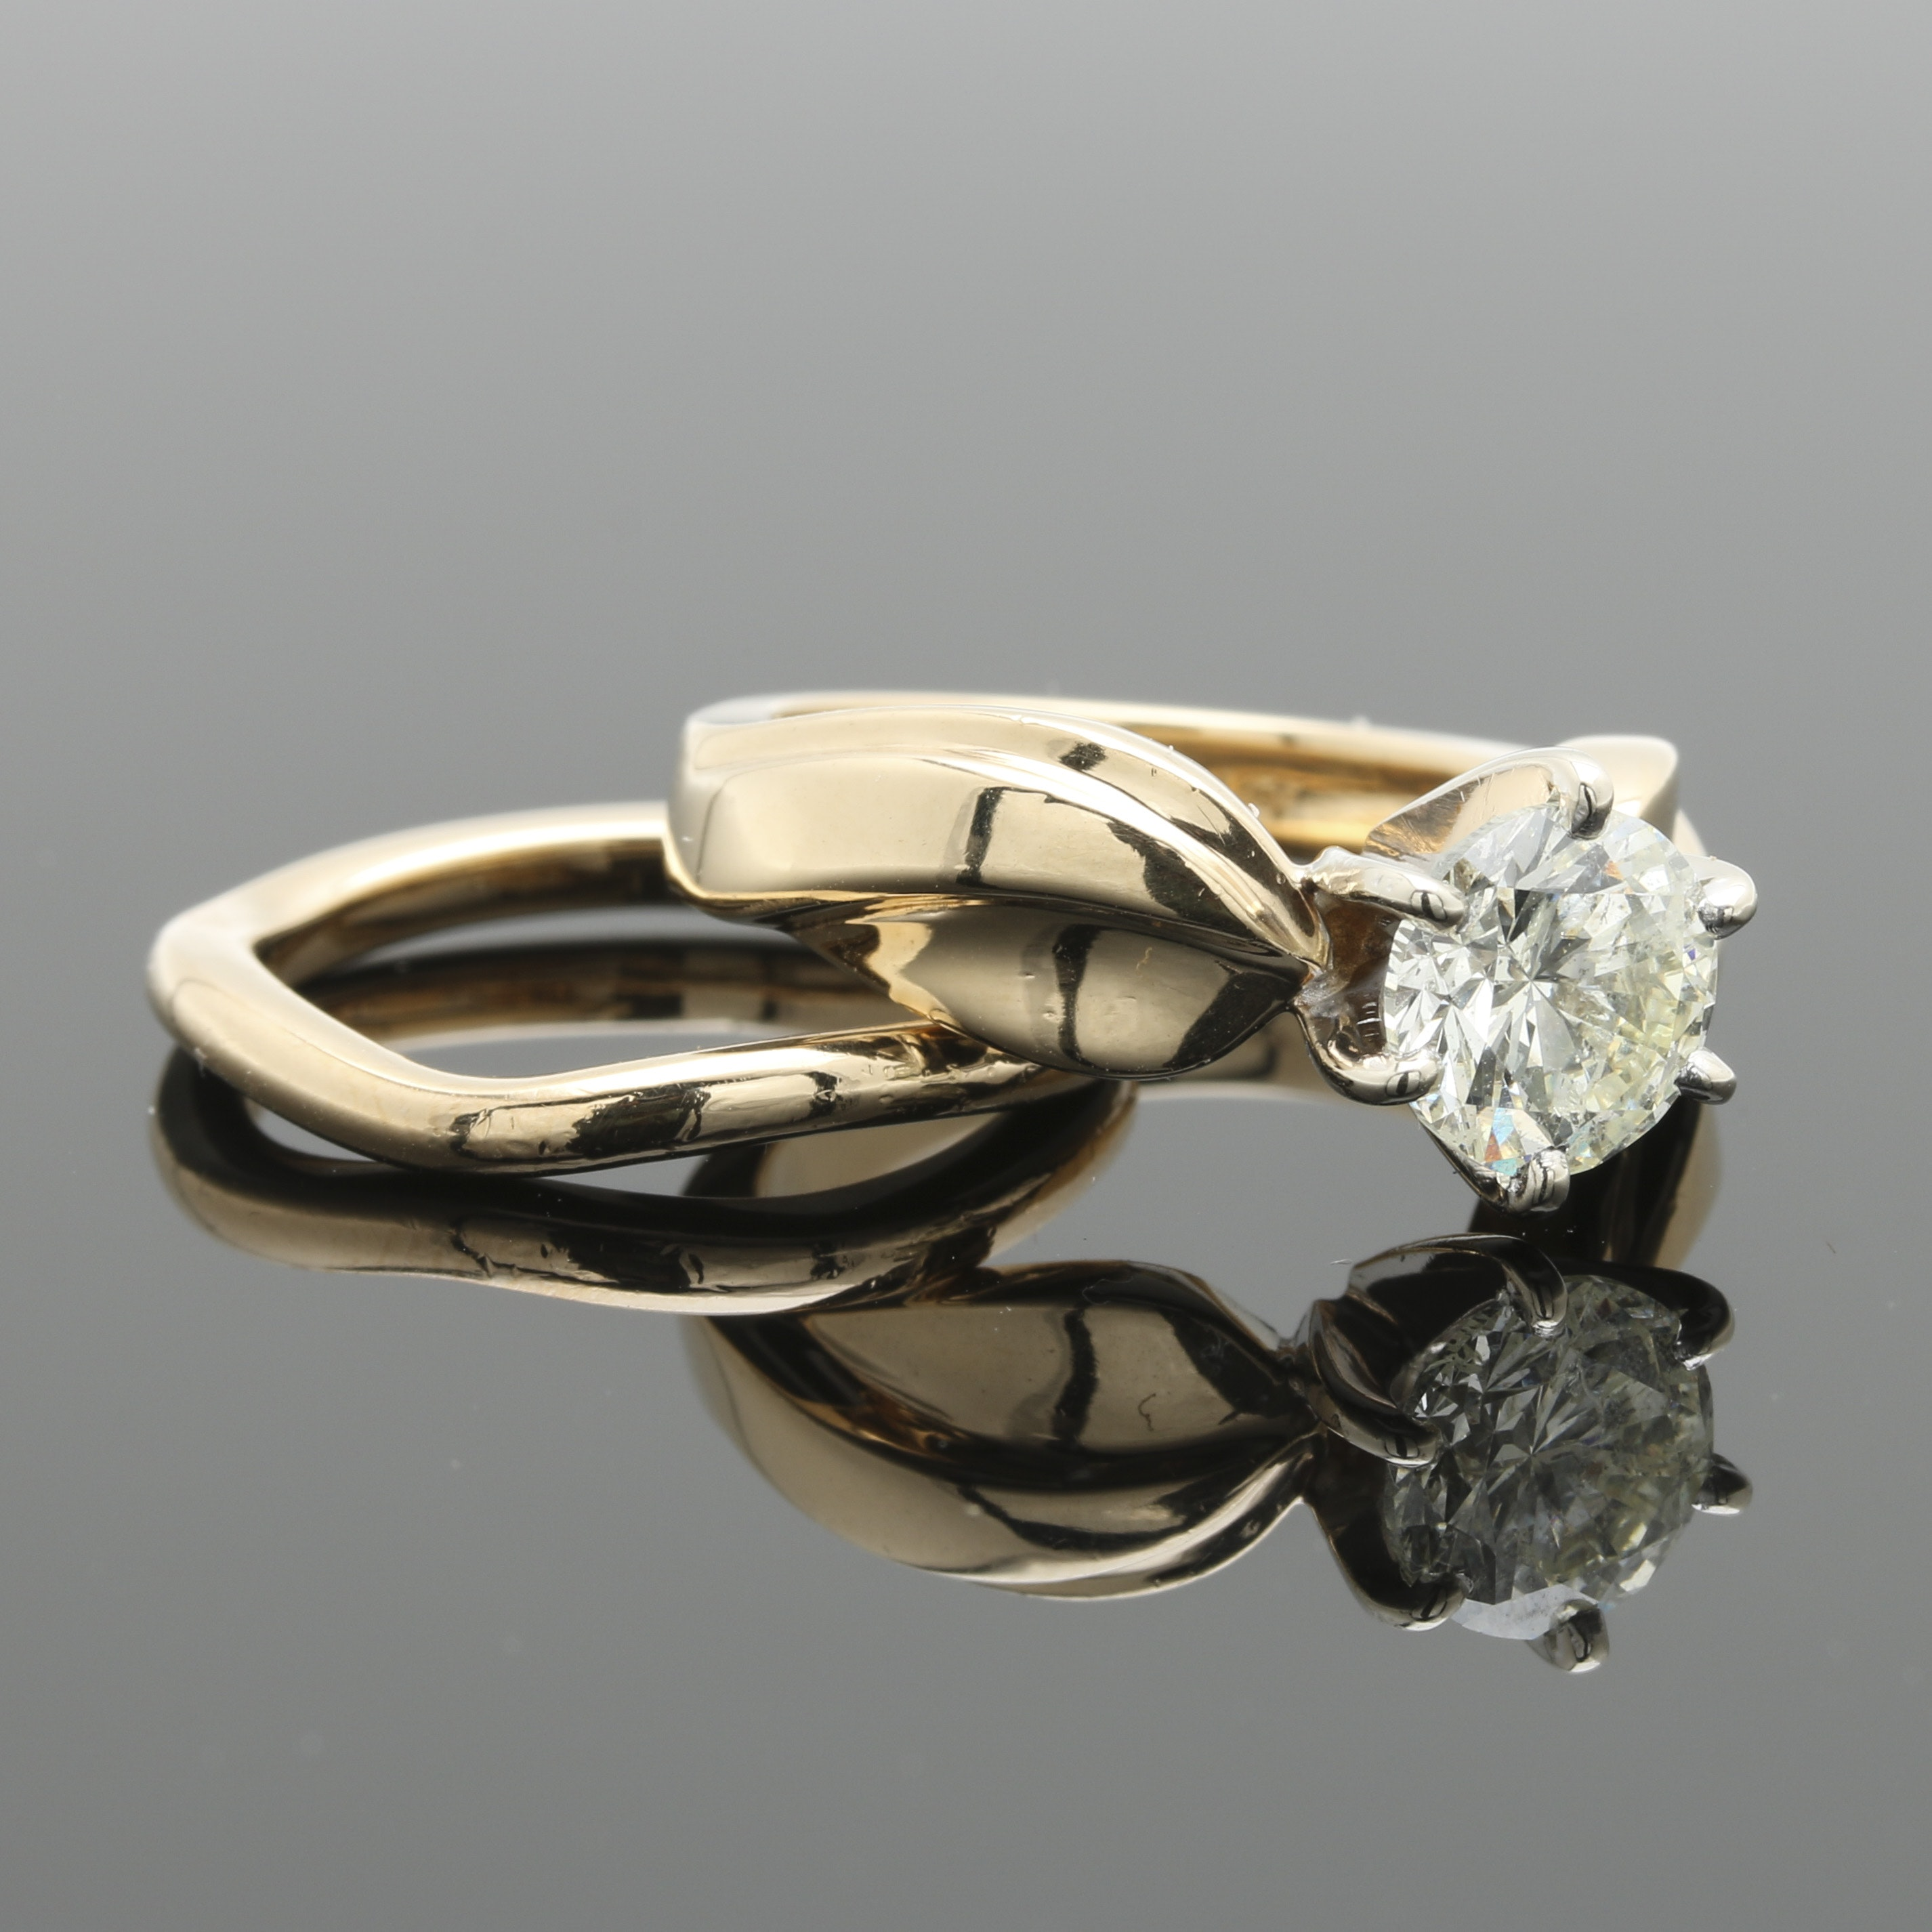 14K Yellow Gold 1.50 CT Diamond Bridal Ring Set